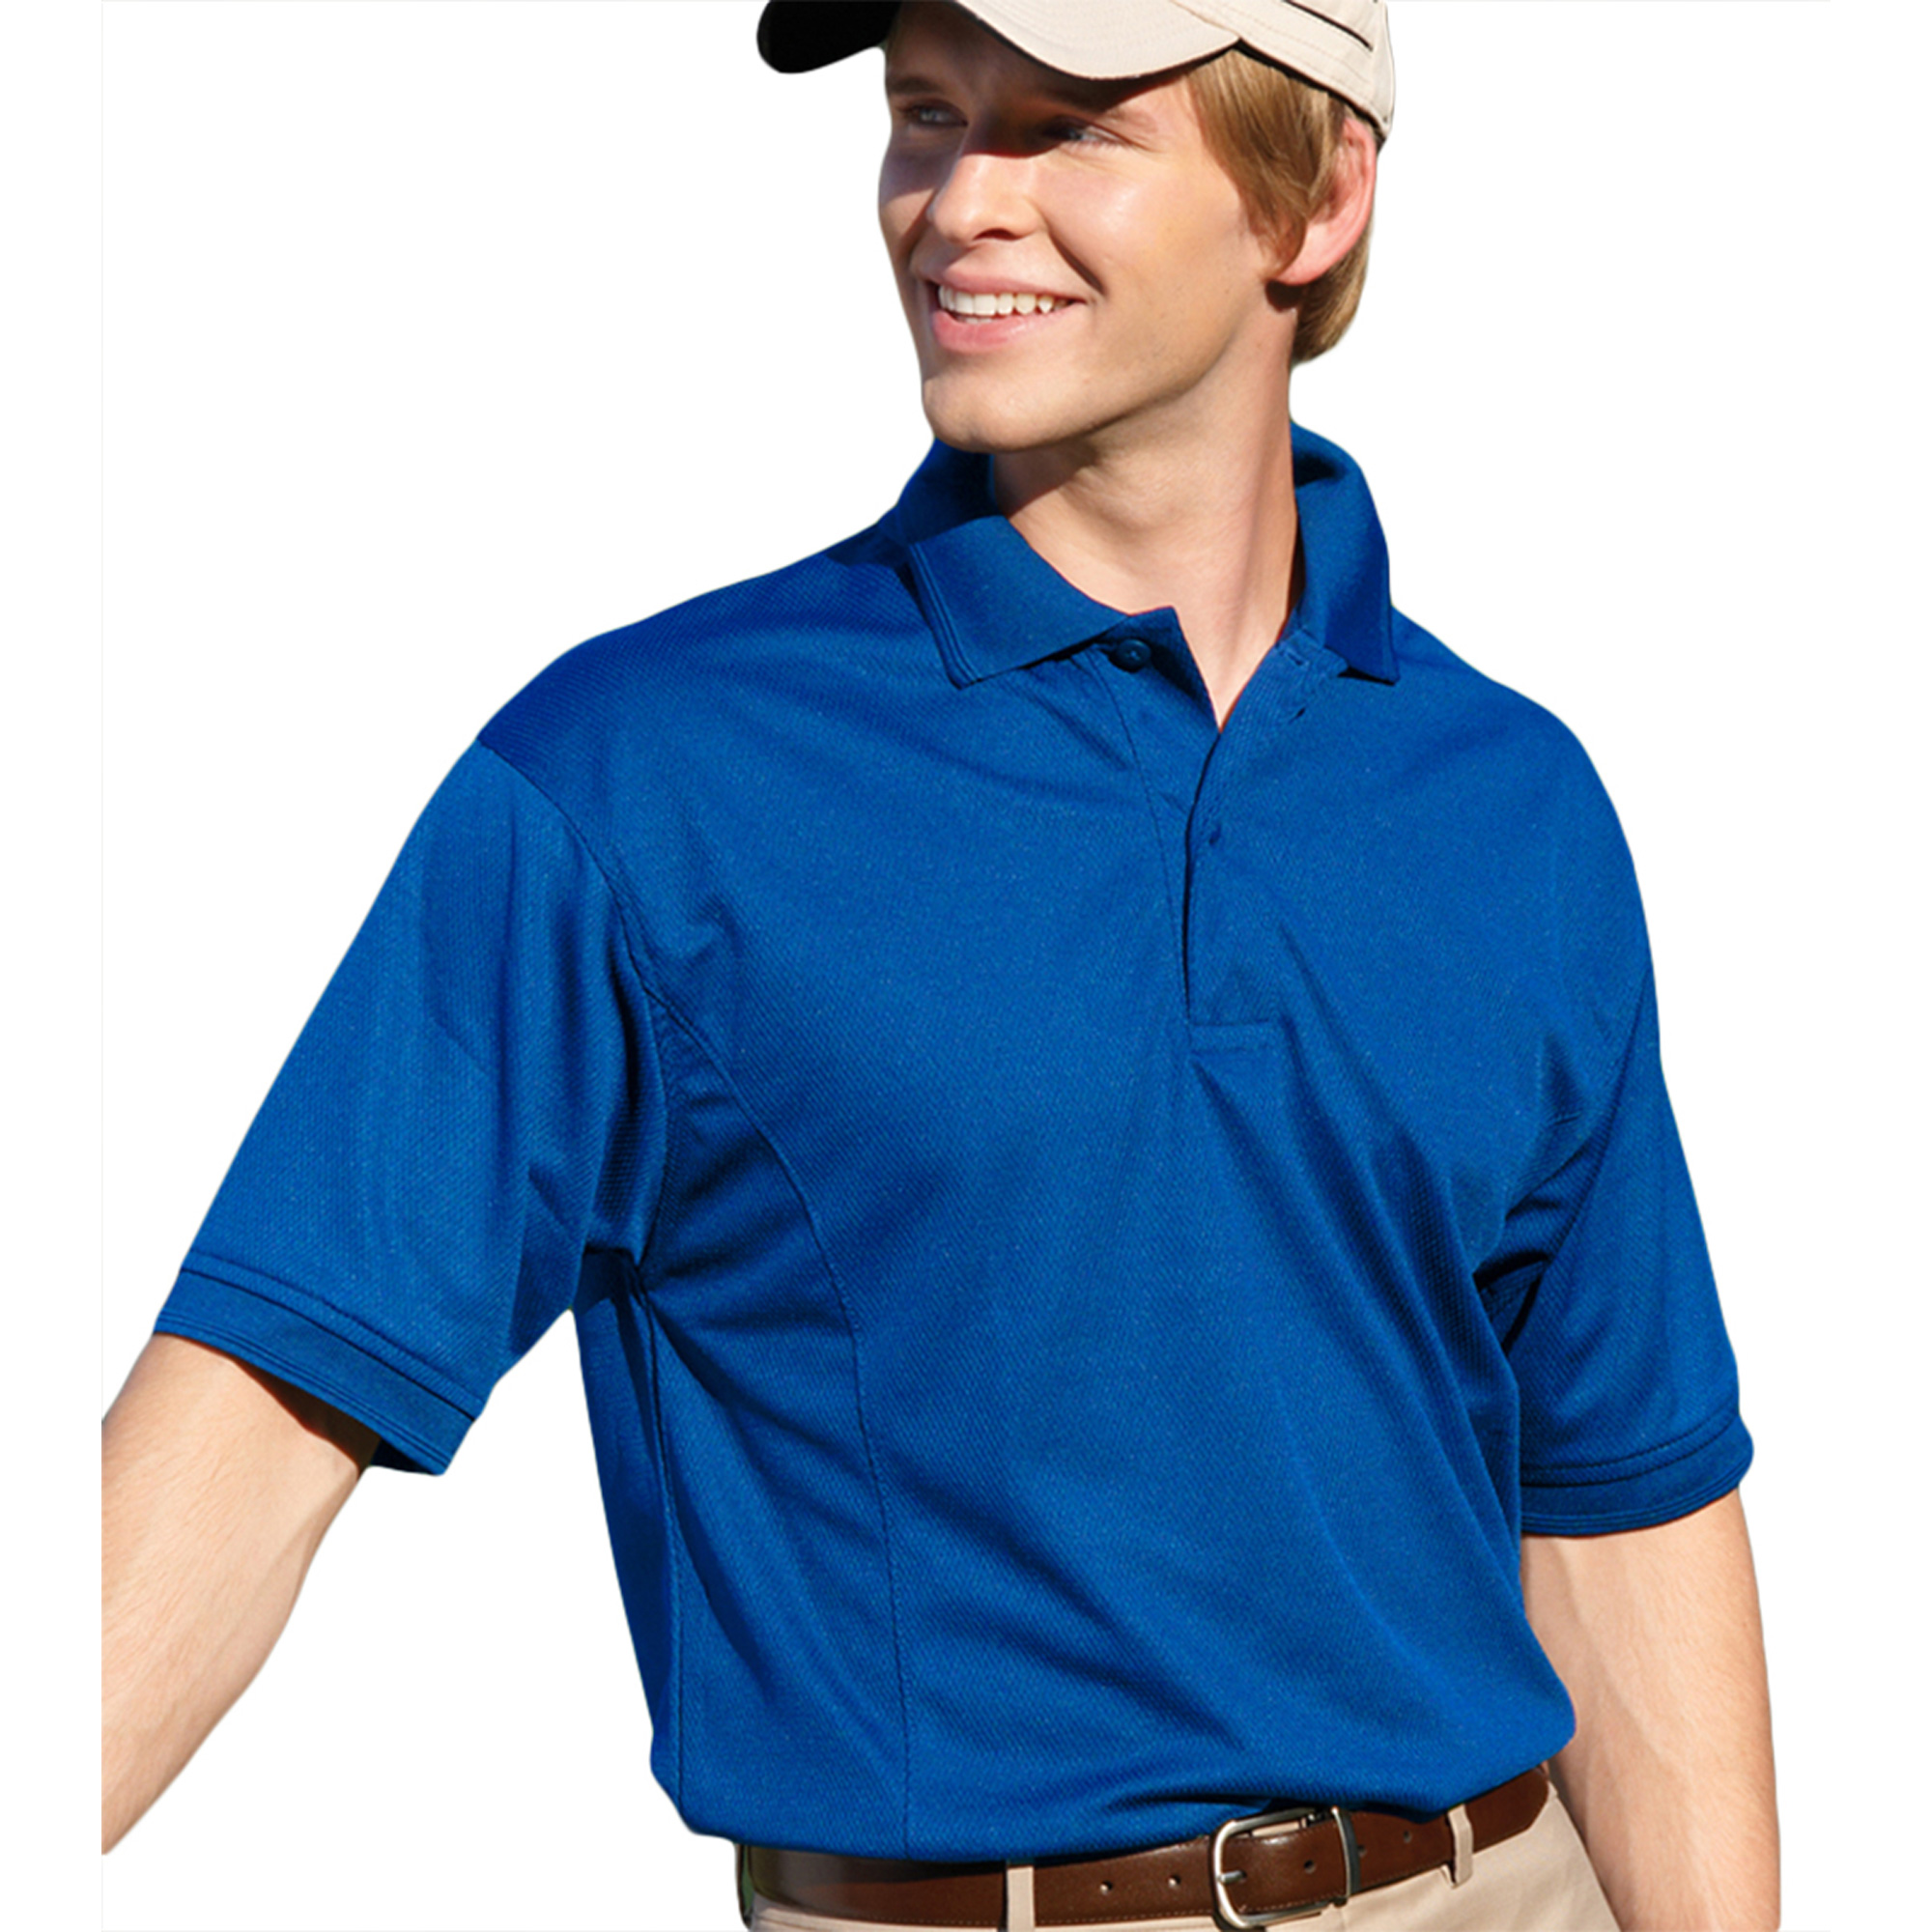 00820599181146 MENS PERFORMANCE GOLF SHIRT 2800 ROYAL 3XL